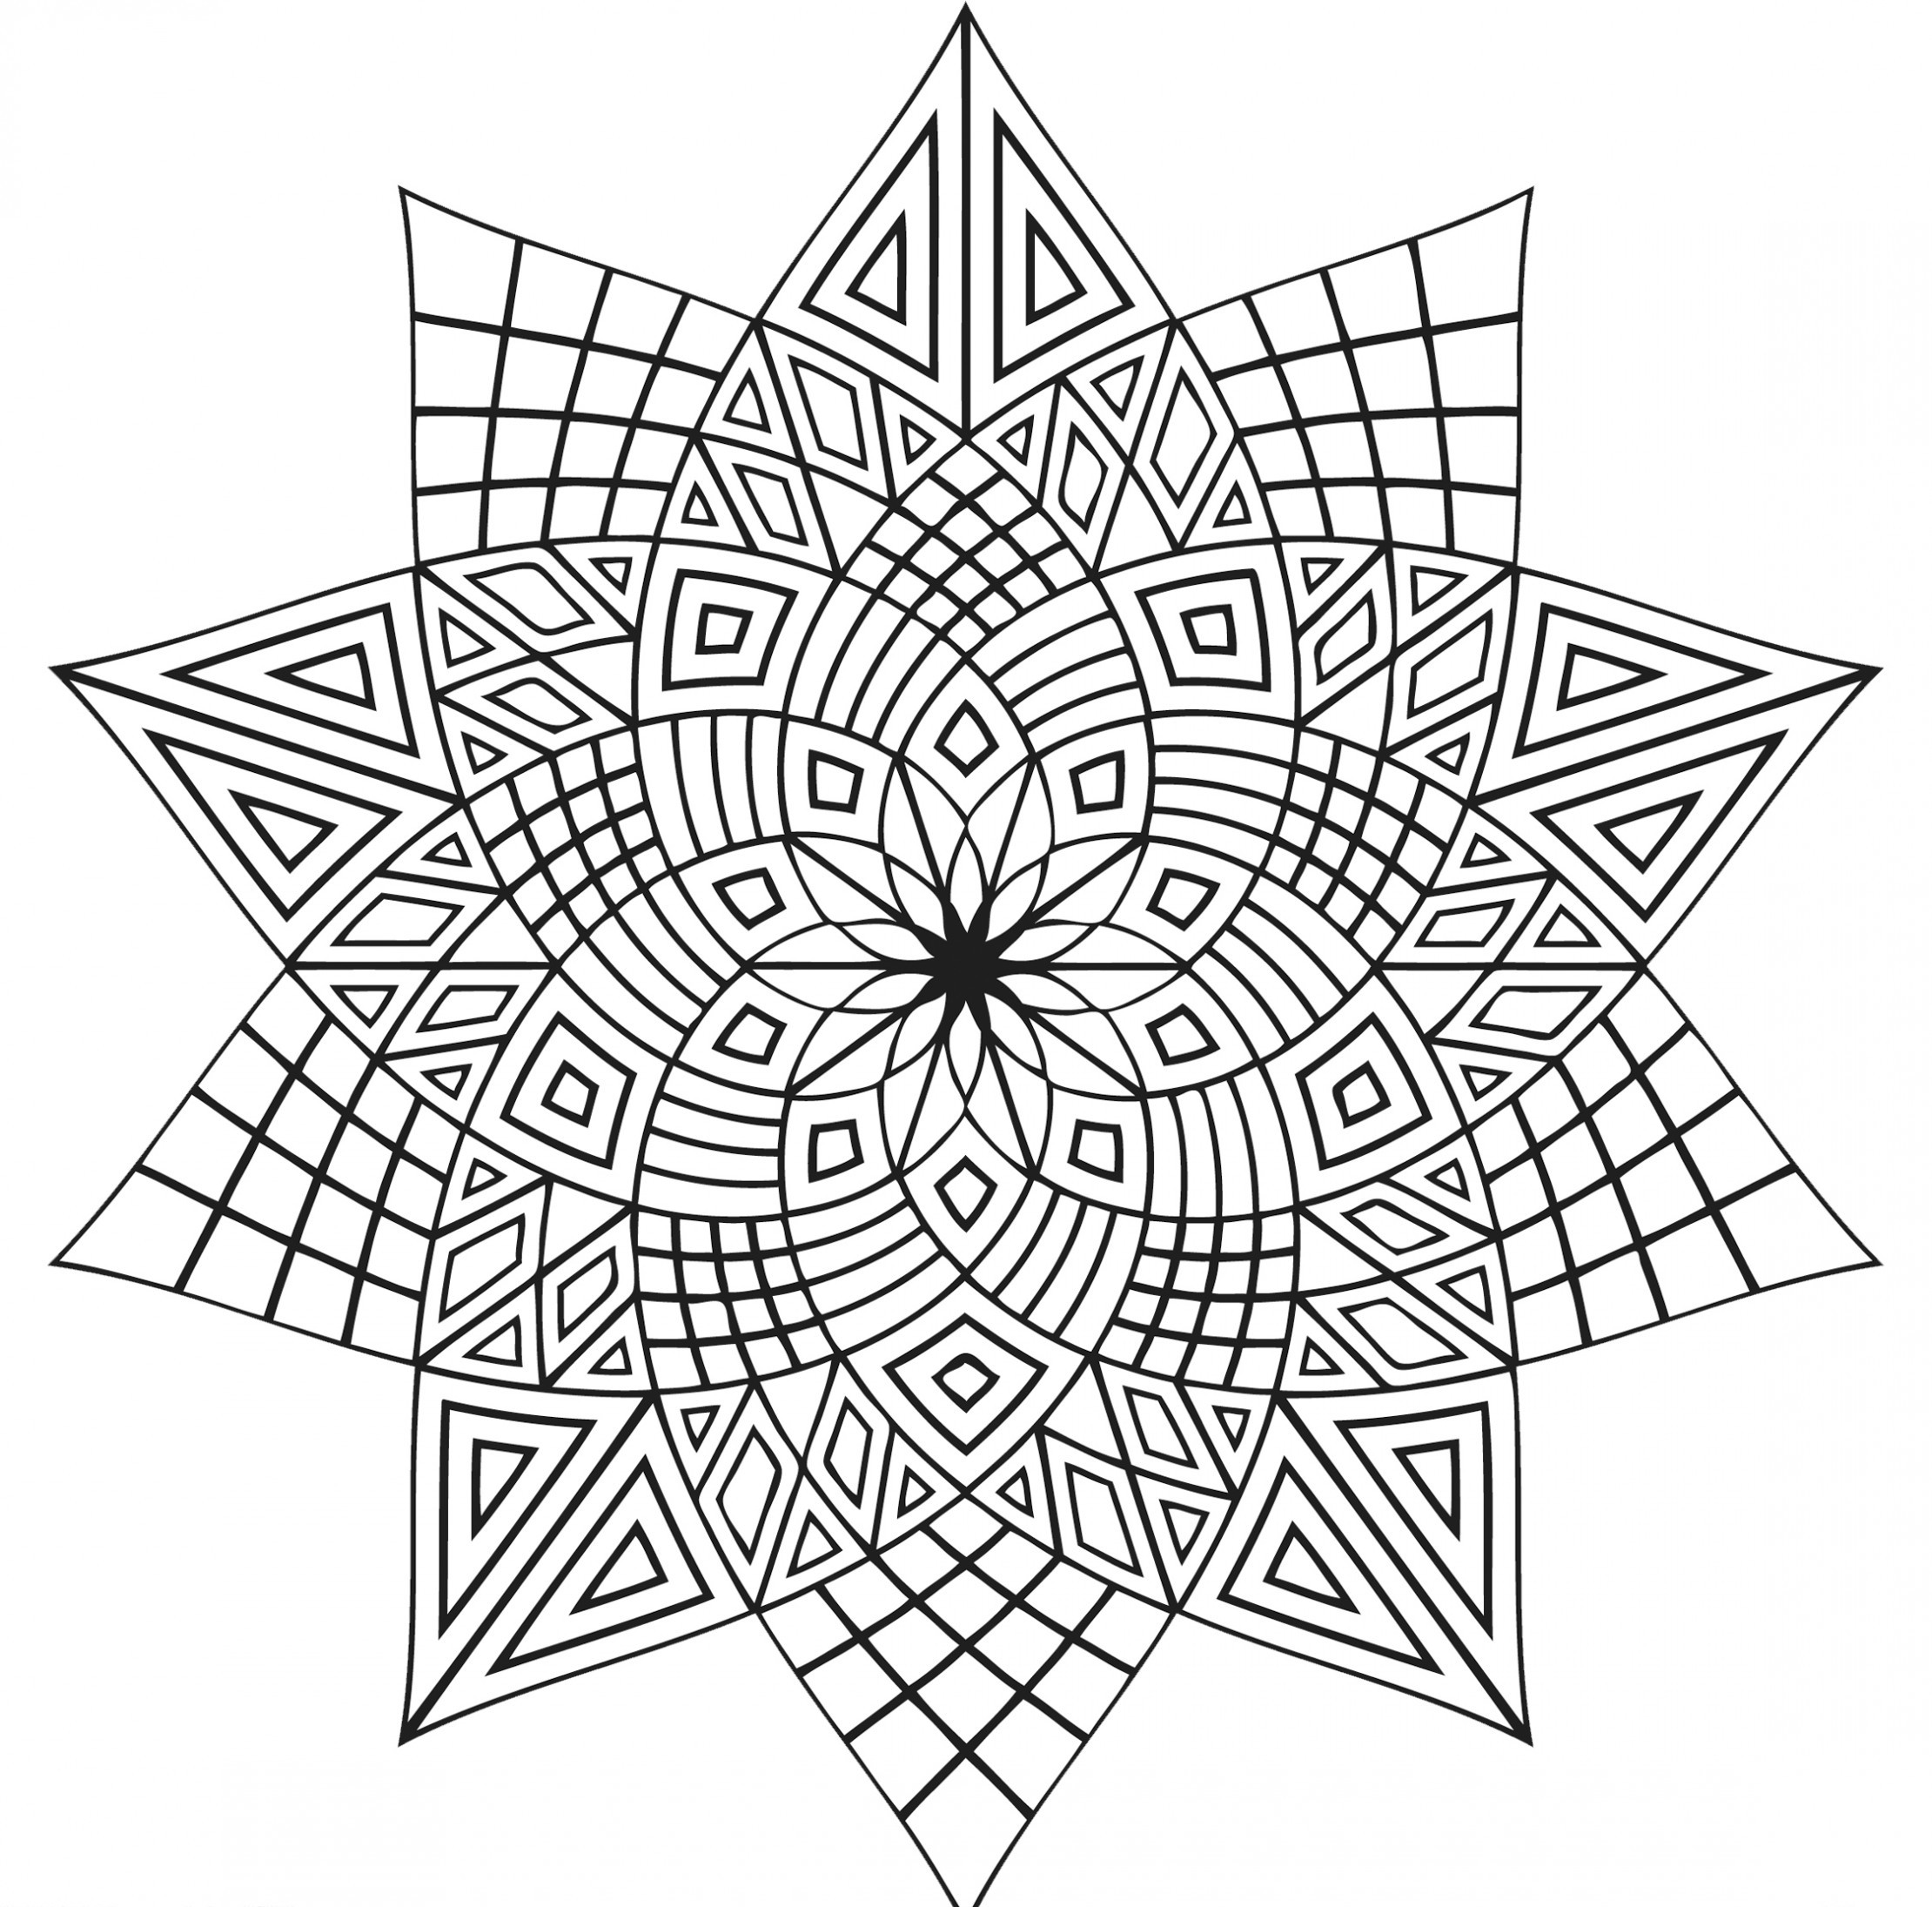 2220x2191 Kaleidoscope Coloring Pages Free Designs Allmadecine Weddings